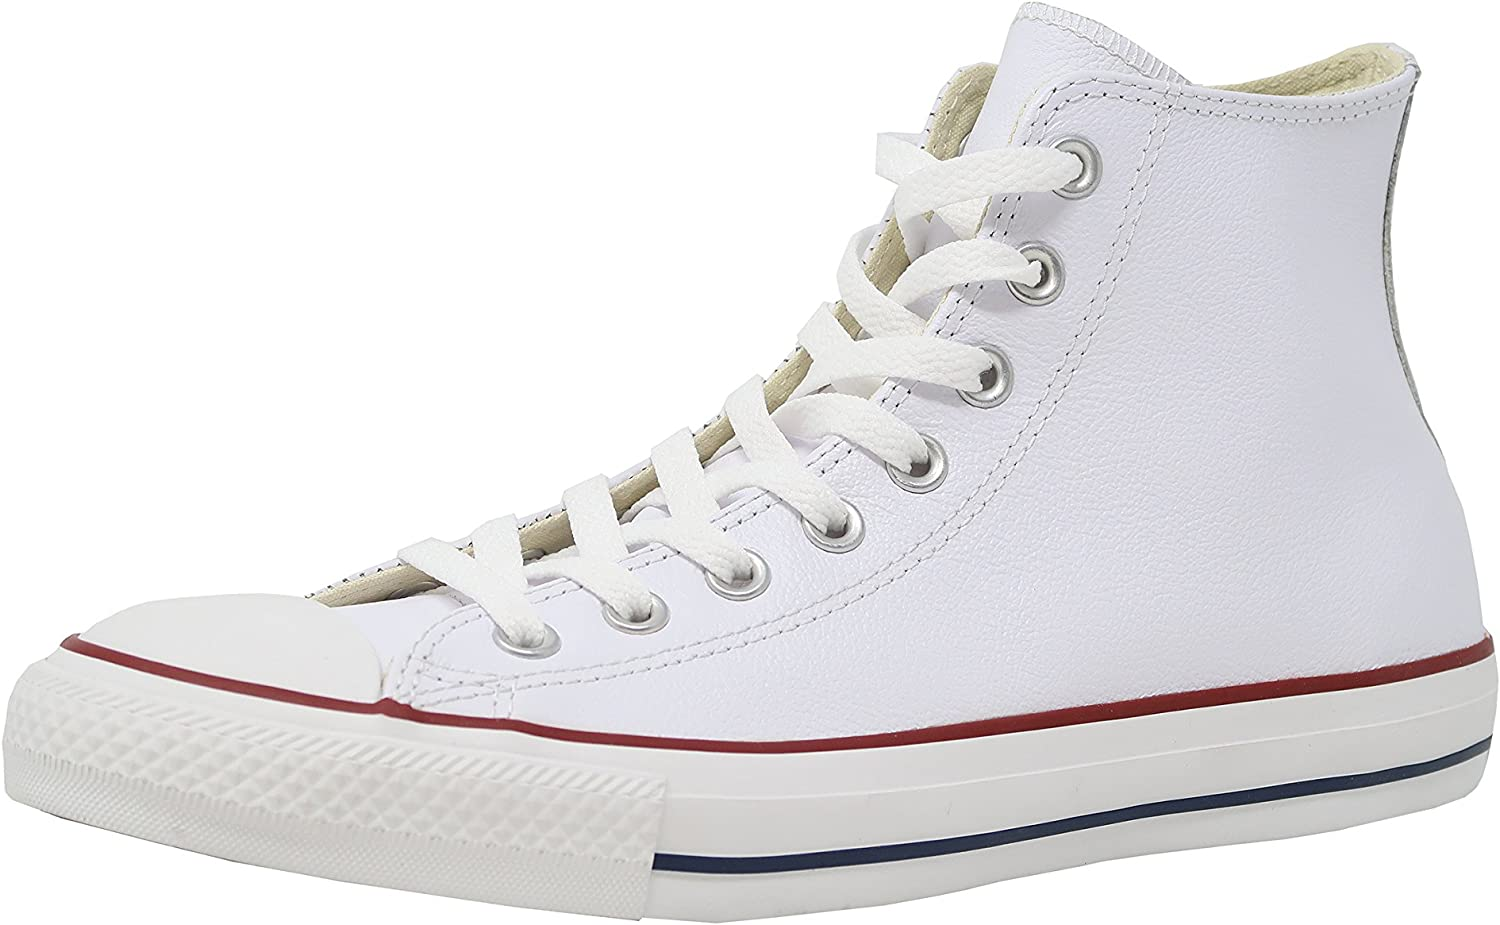 Converse Chuck Taylor All Star Hi Top White Leather 132169C